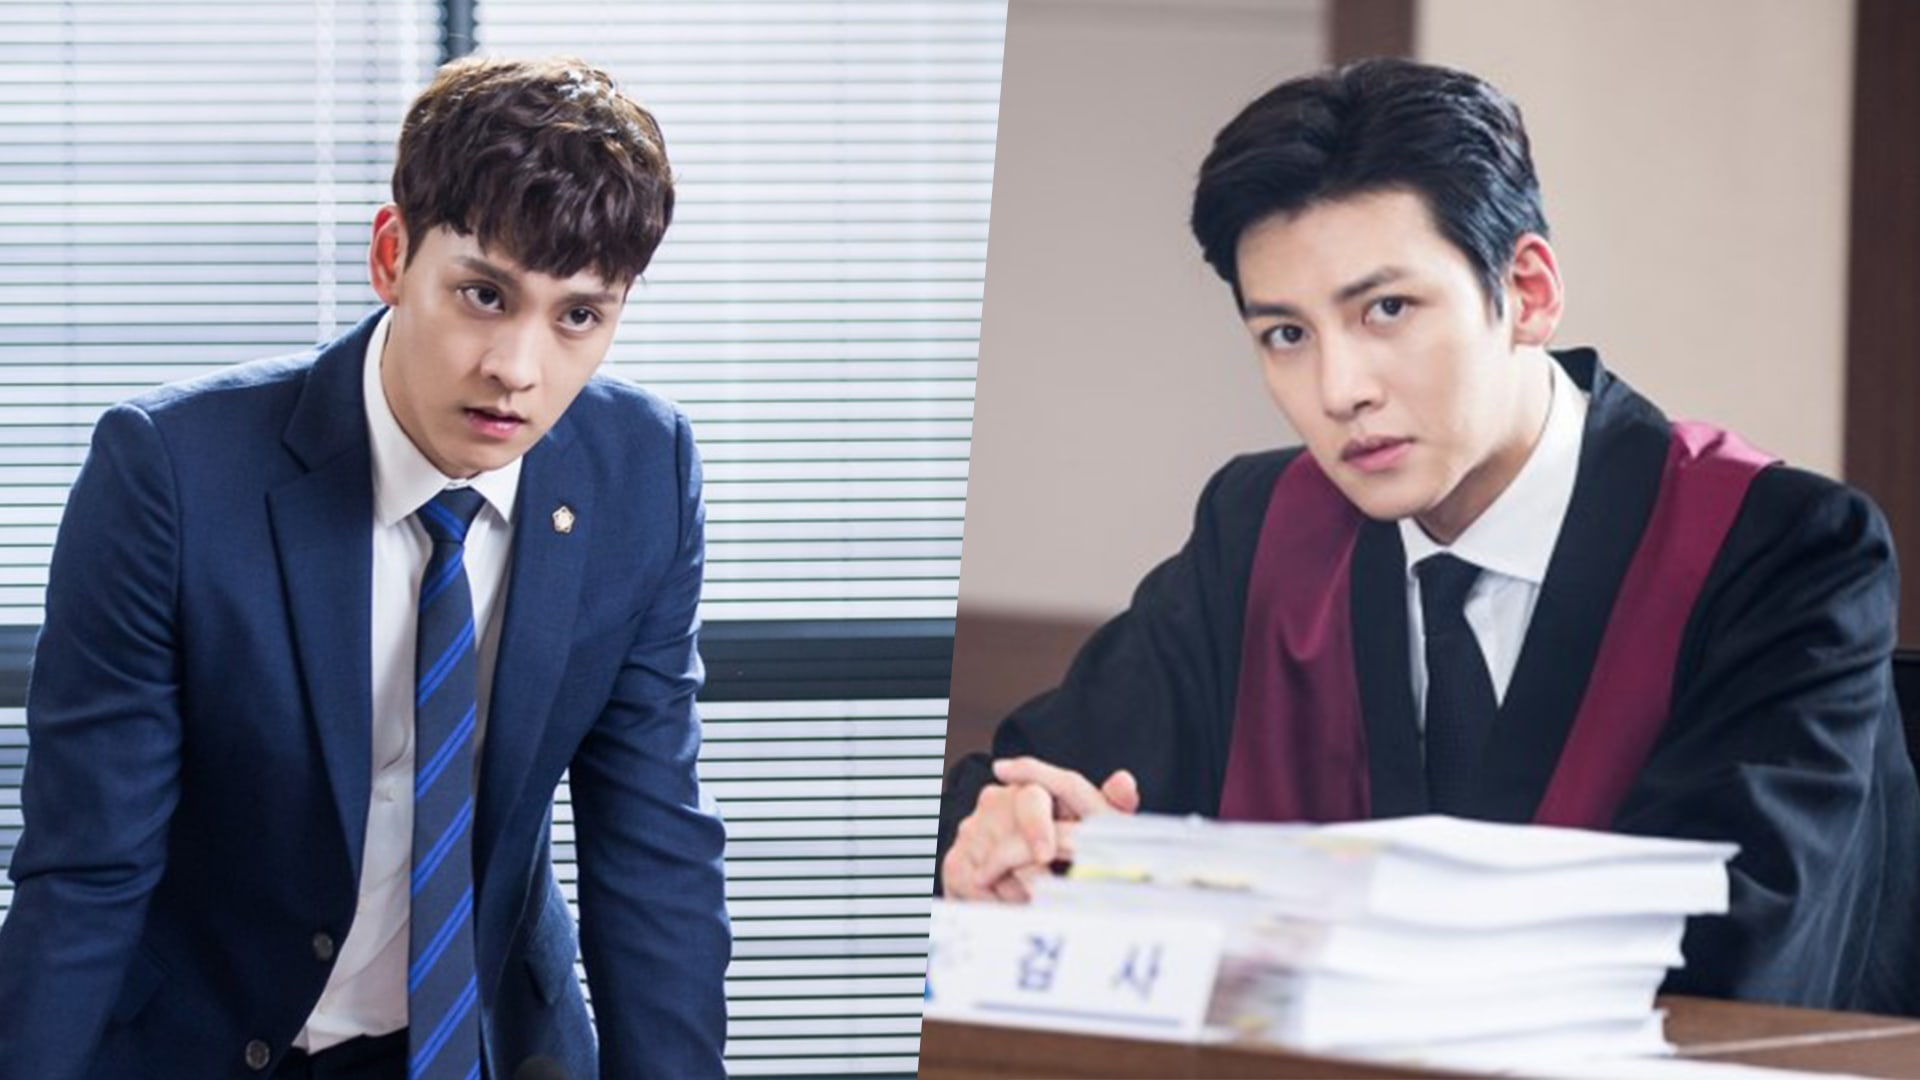 Ji Chang Wook And Choi Tae Joon Face Off In Court In New Suspicious Partner Stills